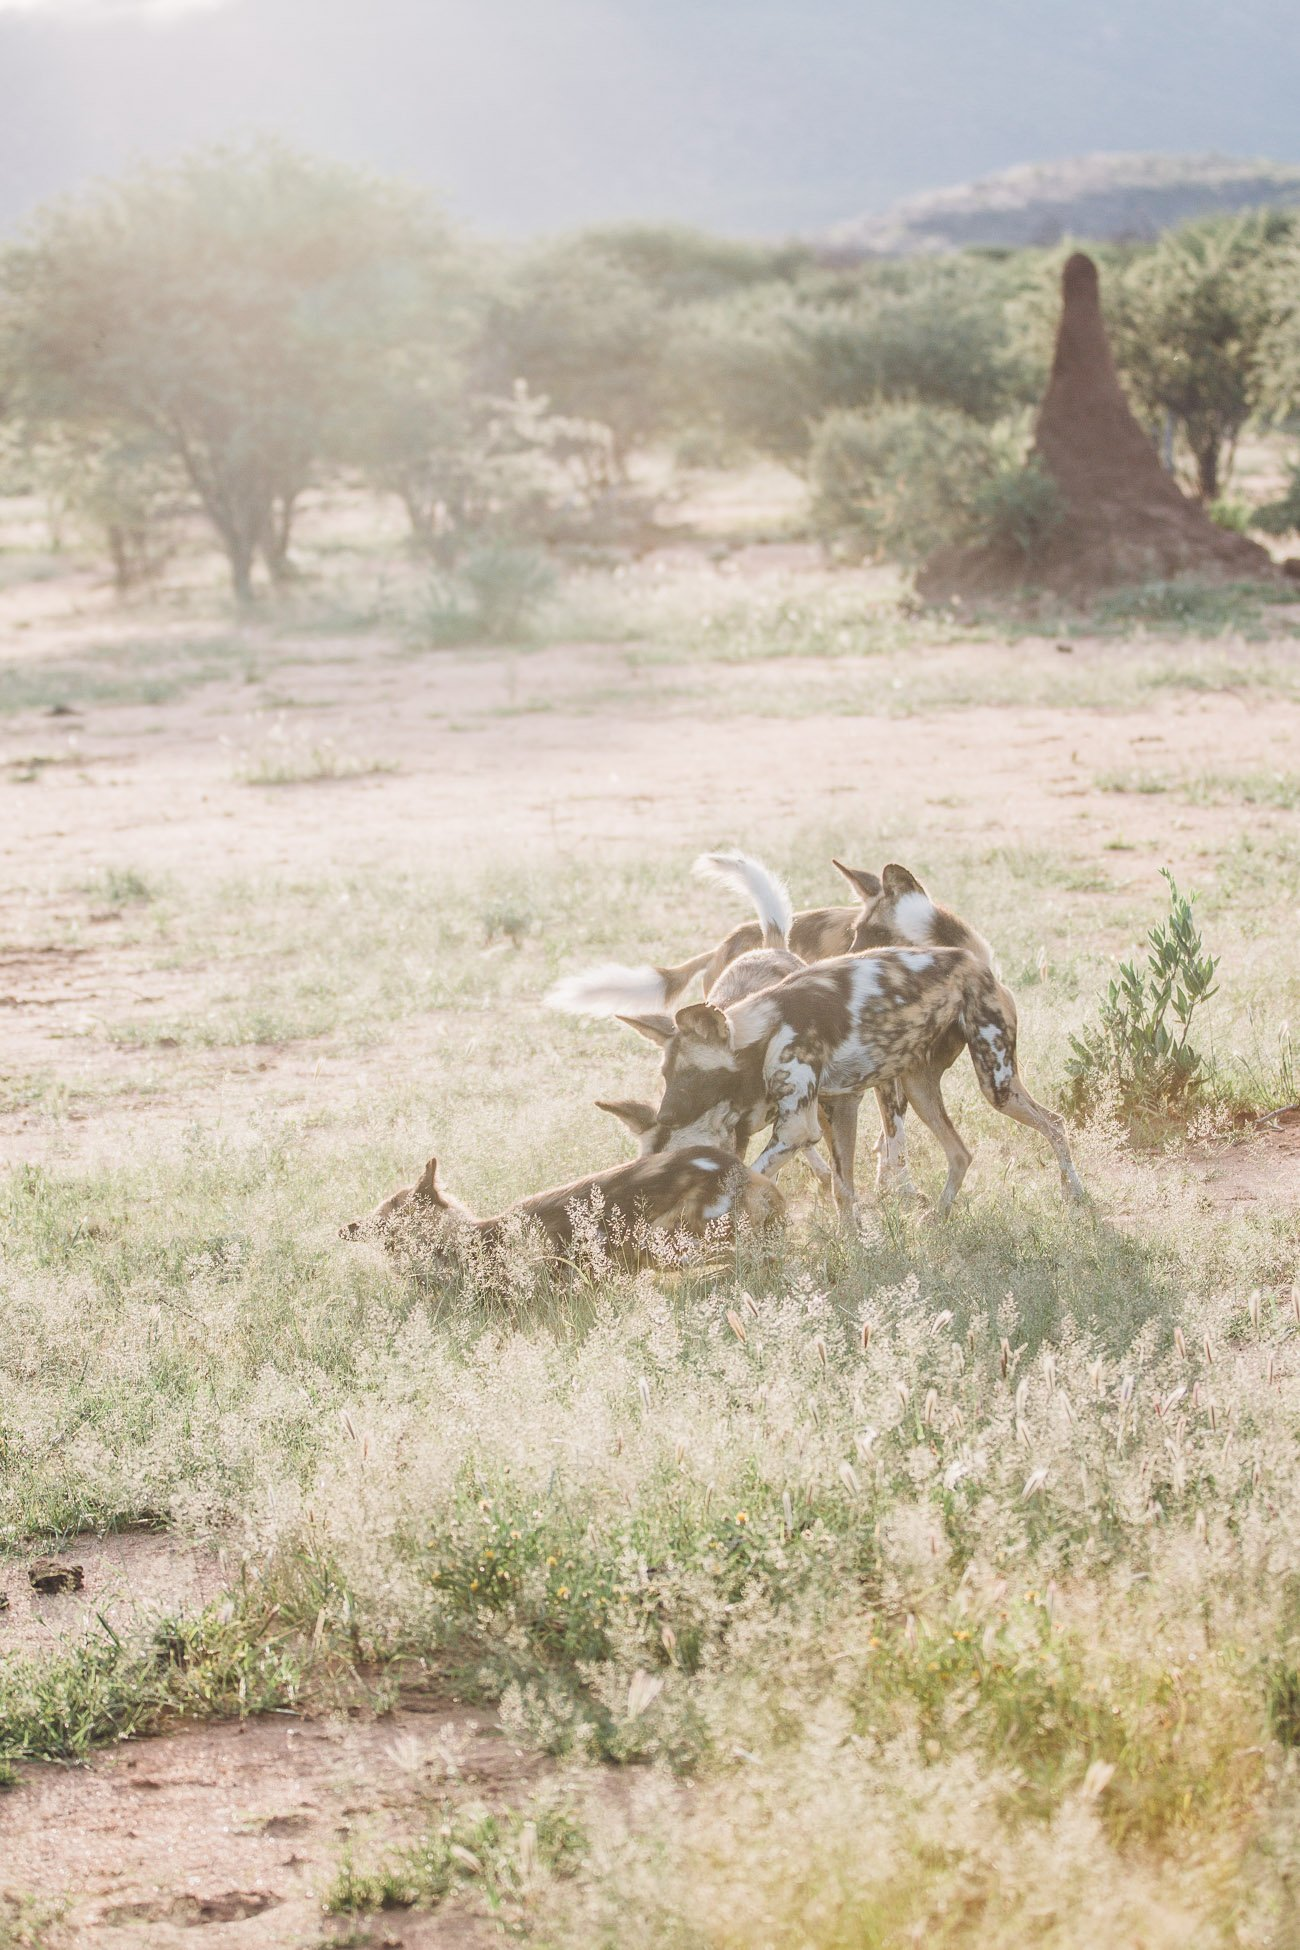 Wild Dogs at a Safari in Namibia